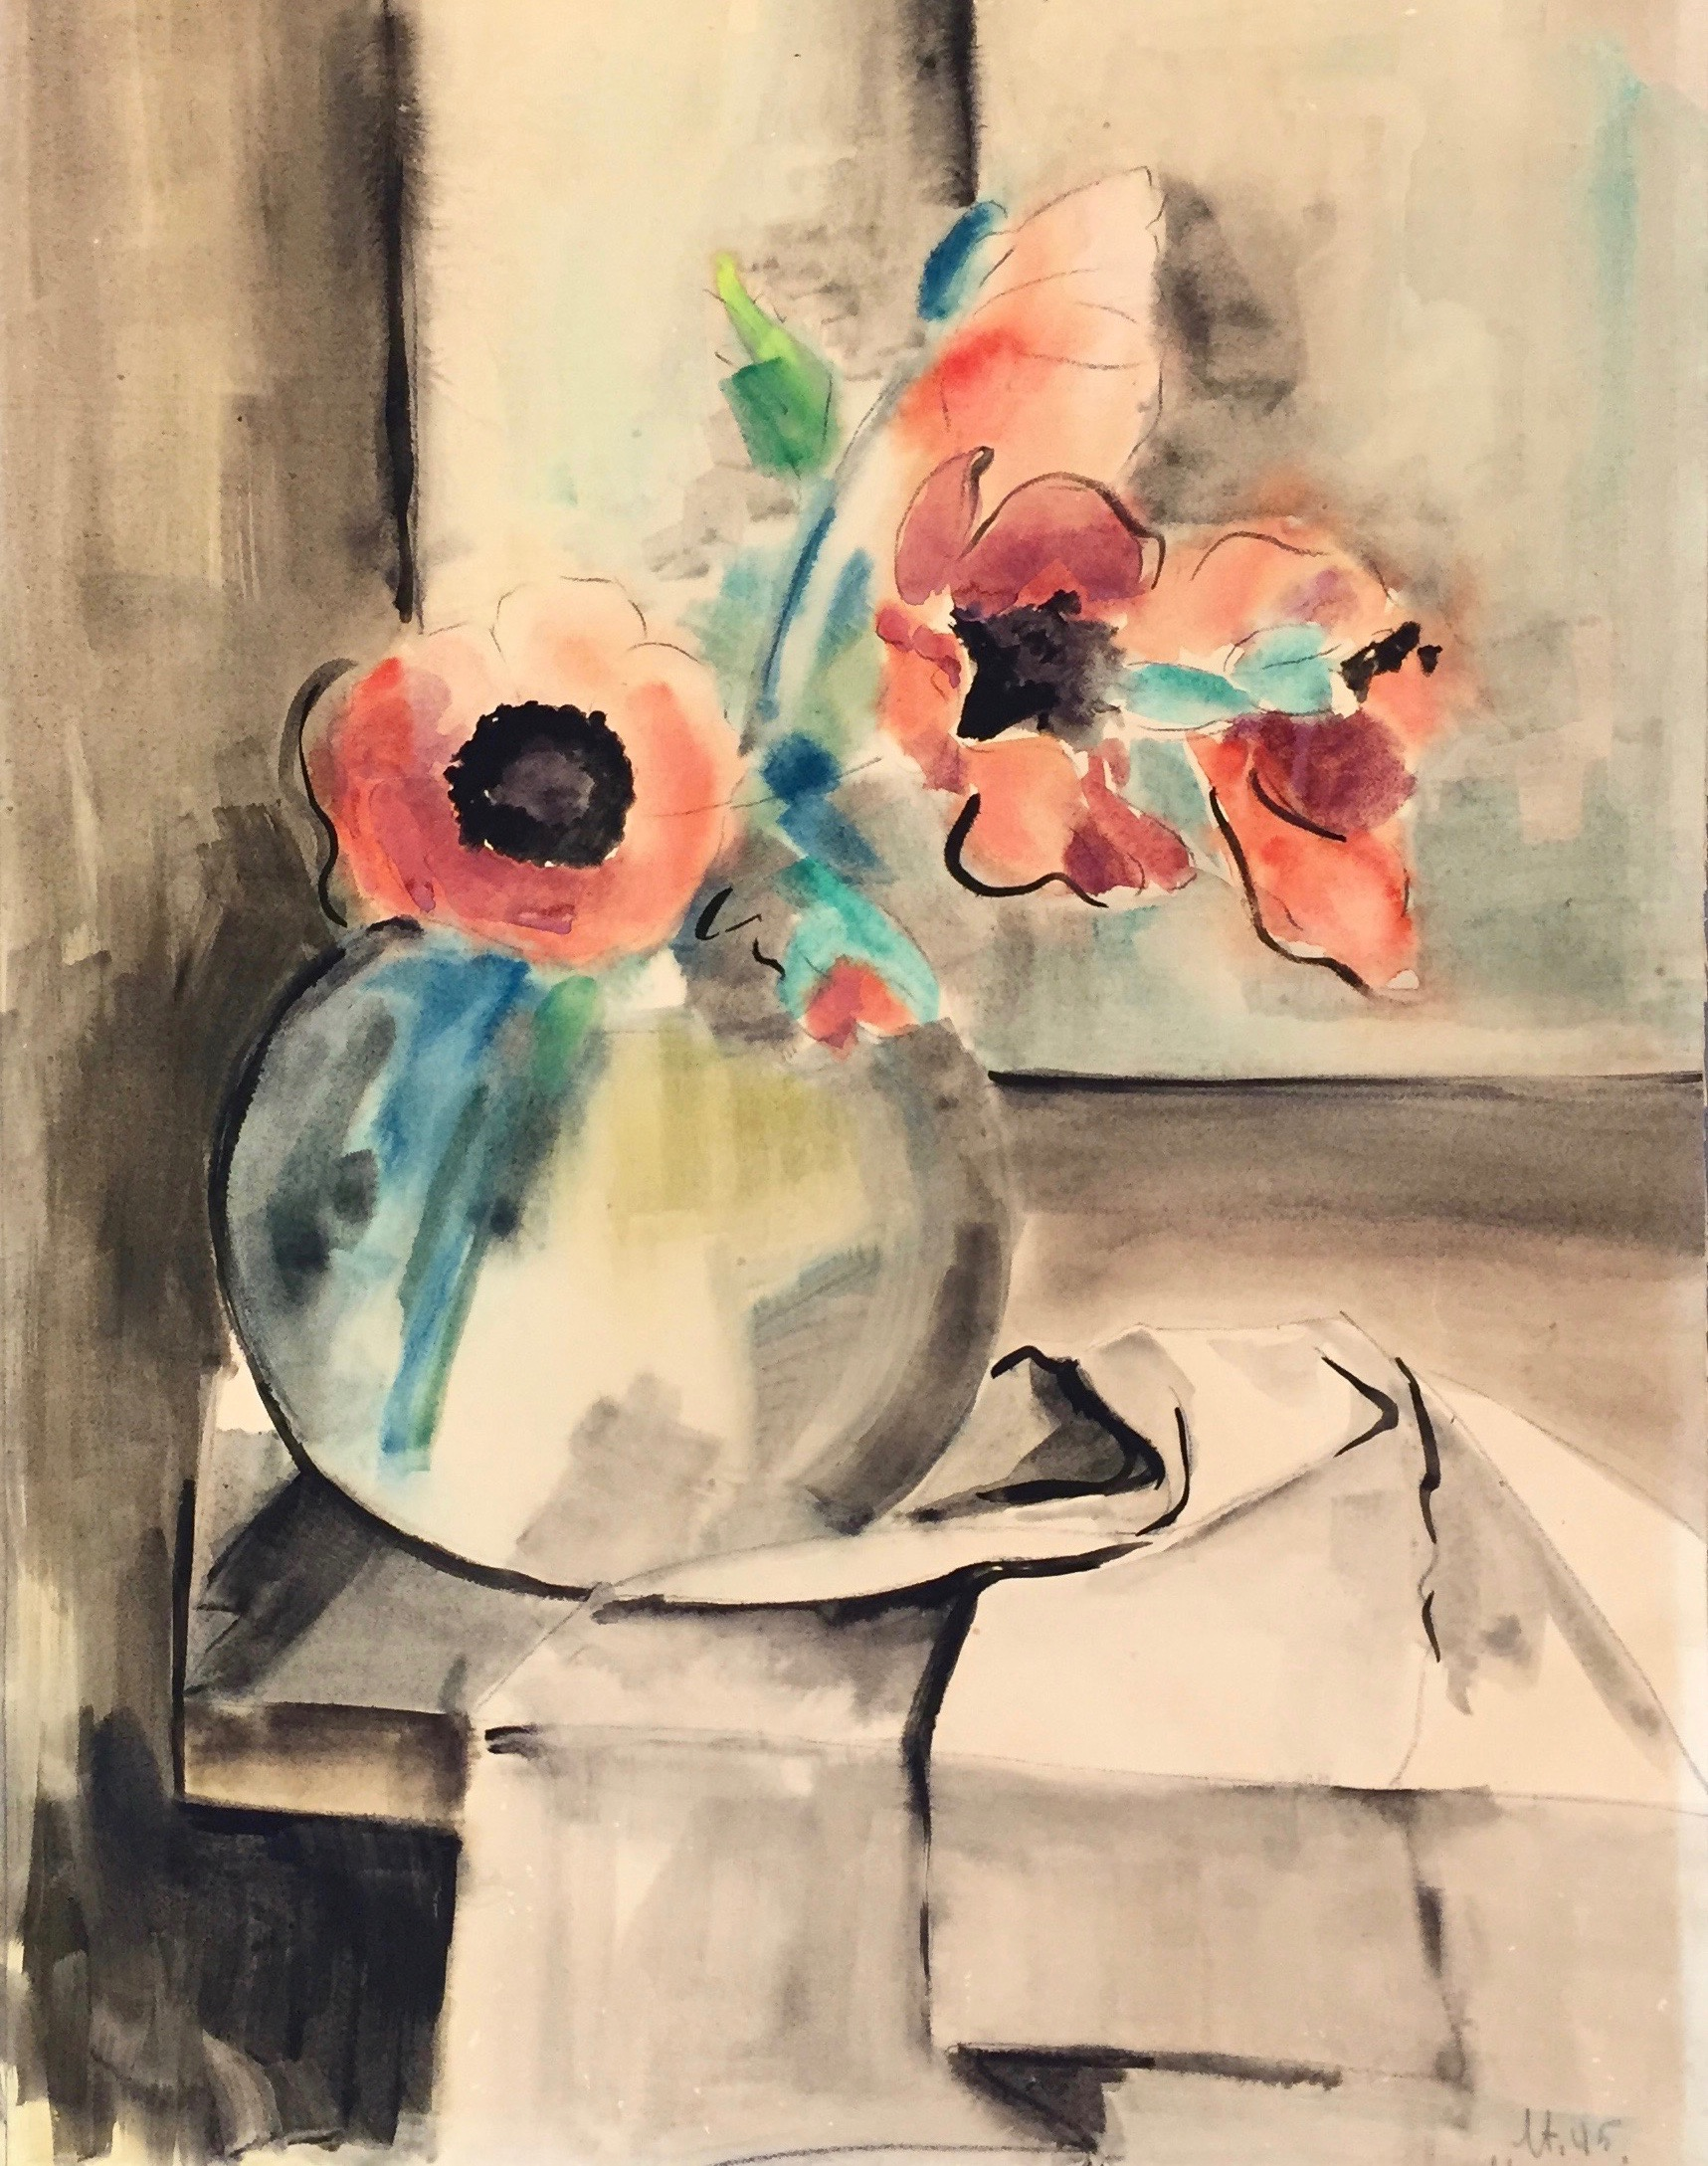 Hort Strempel | Untitled (Still Life) | 1945 | watercolour | signed and dated | 62 x 48 cm